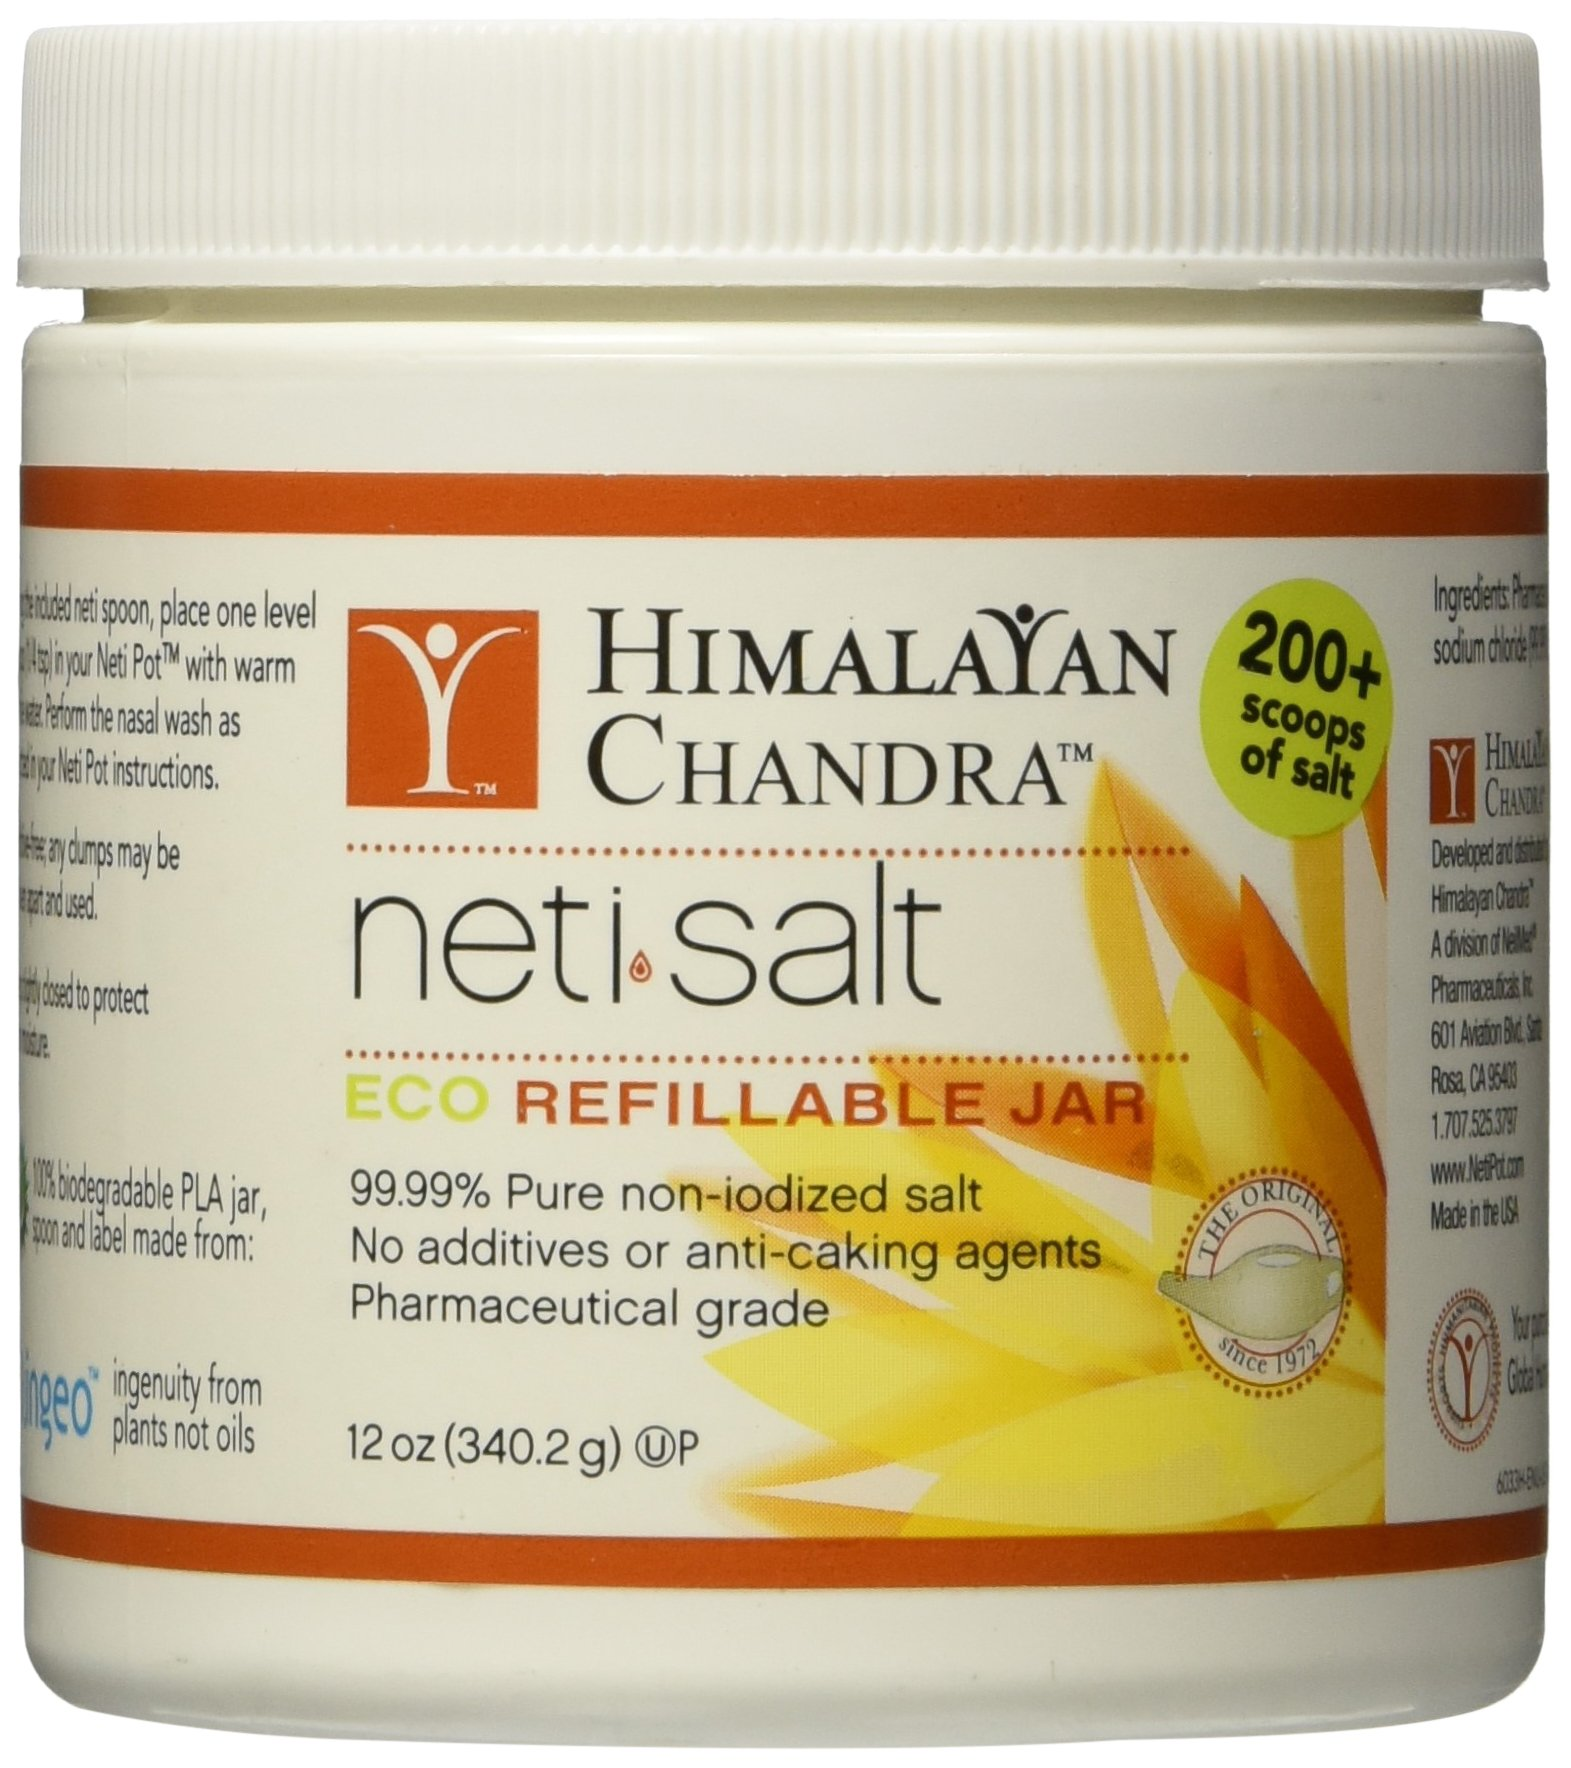 Himalayan Institute Neti Pot Salt Jar, 12 Ounce